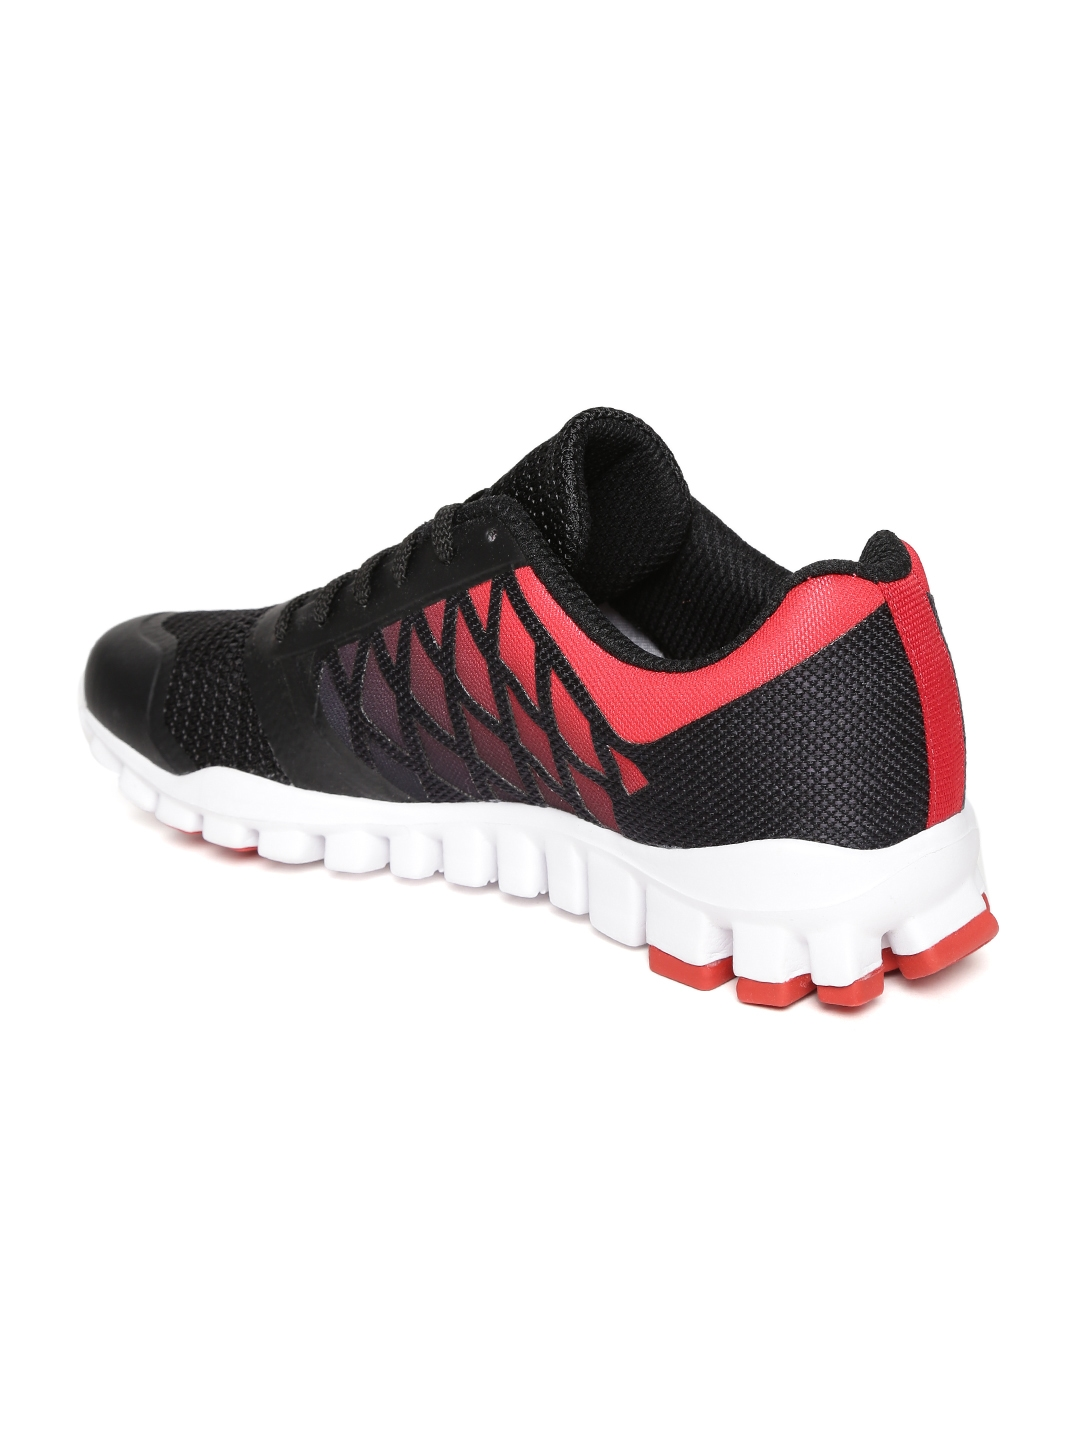 37a01607a97 Buy Reebok Men Black   Red Realflex TR Xtreme Running Shoes - Sports ...